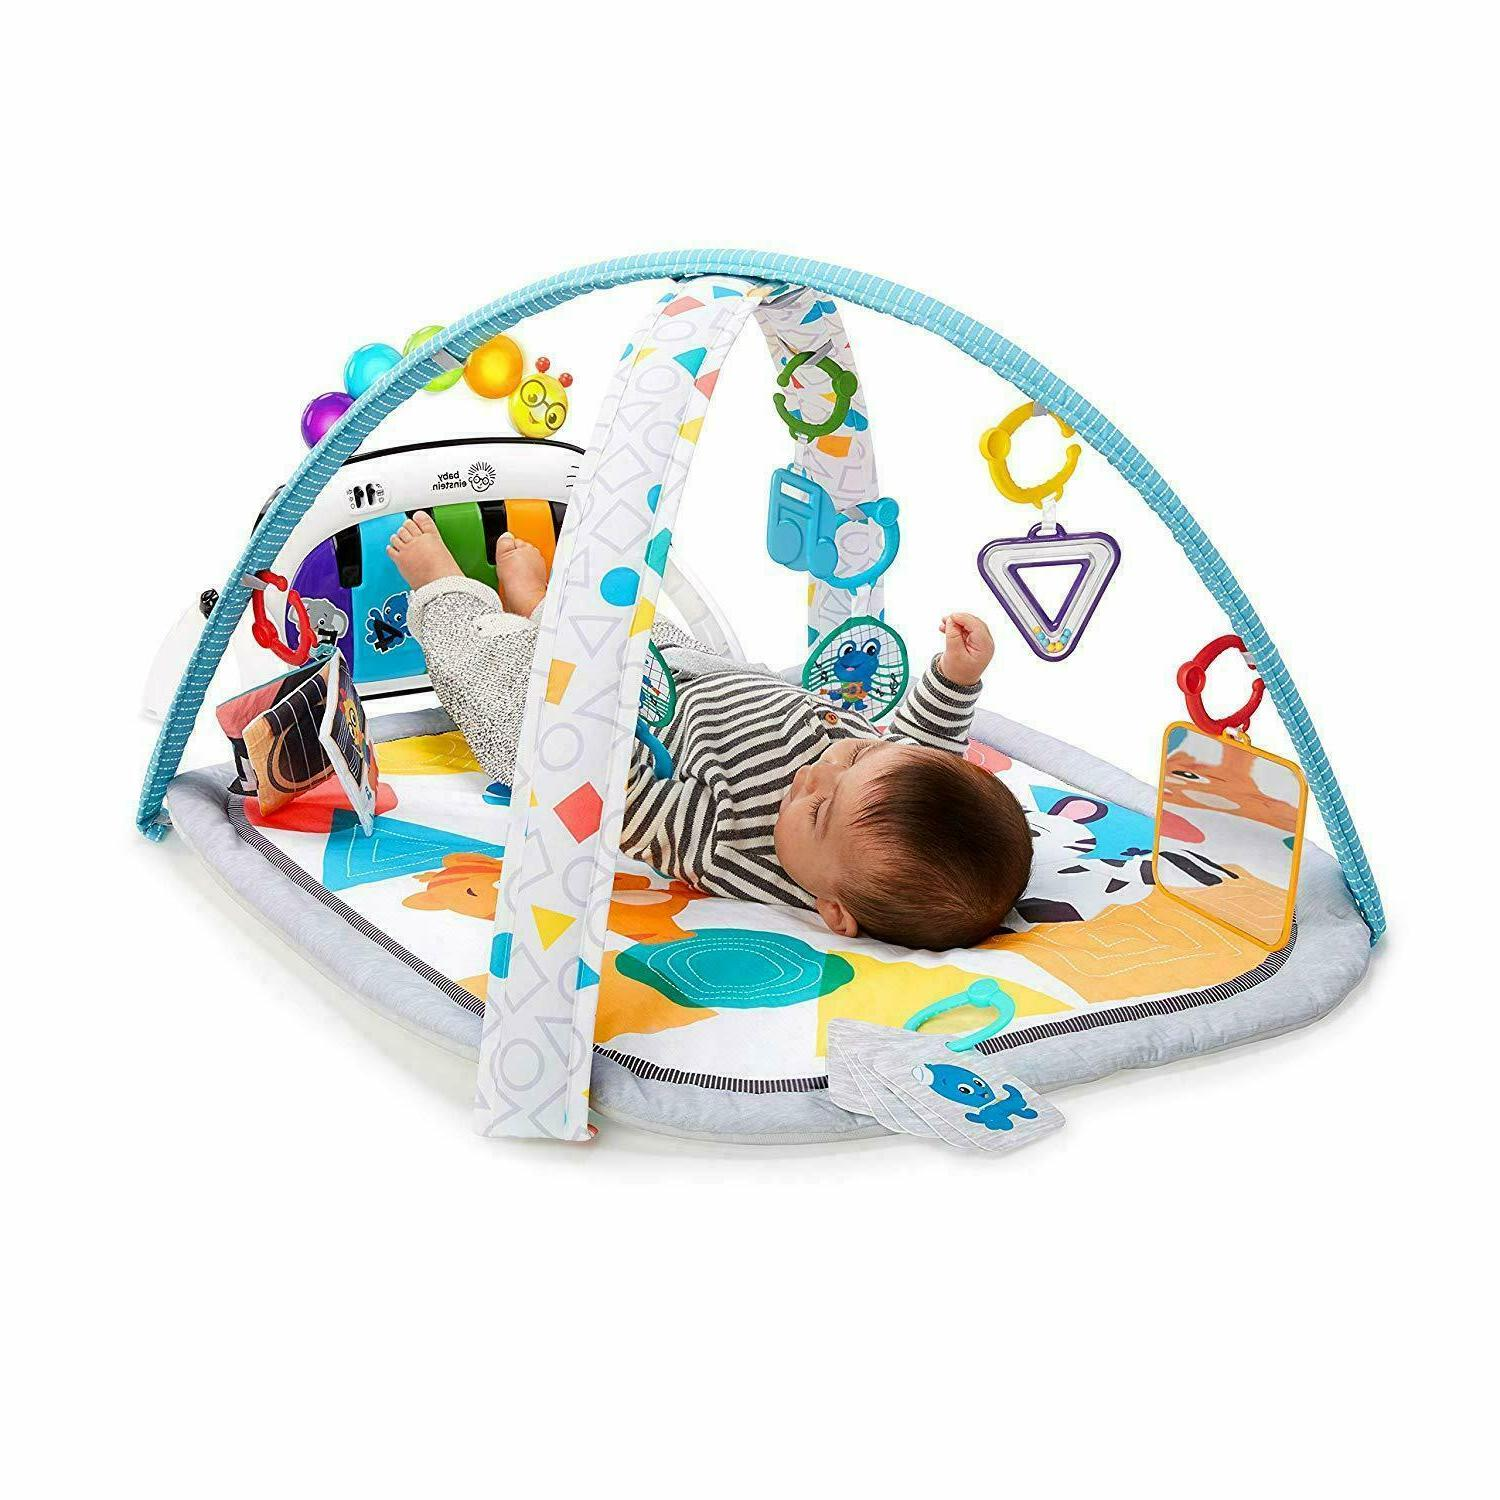 Baby Einstein 4-In-1 Tunes Music And Language Discovery Activity Play Gym